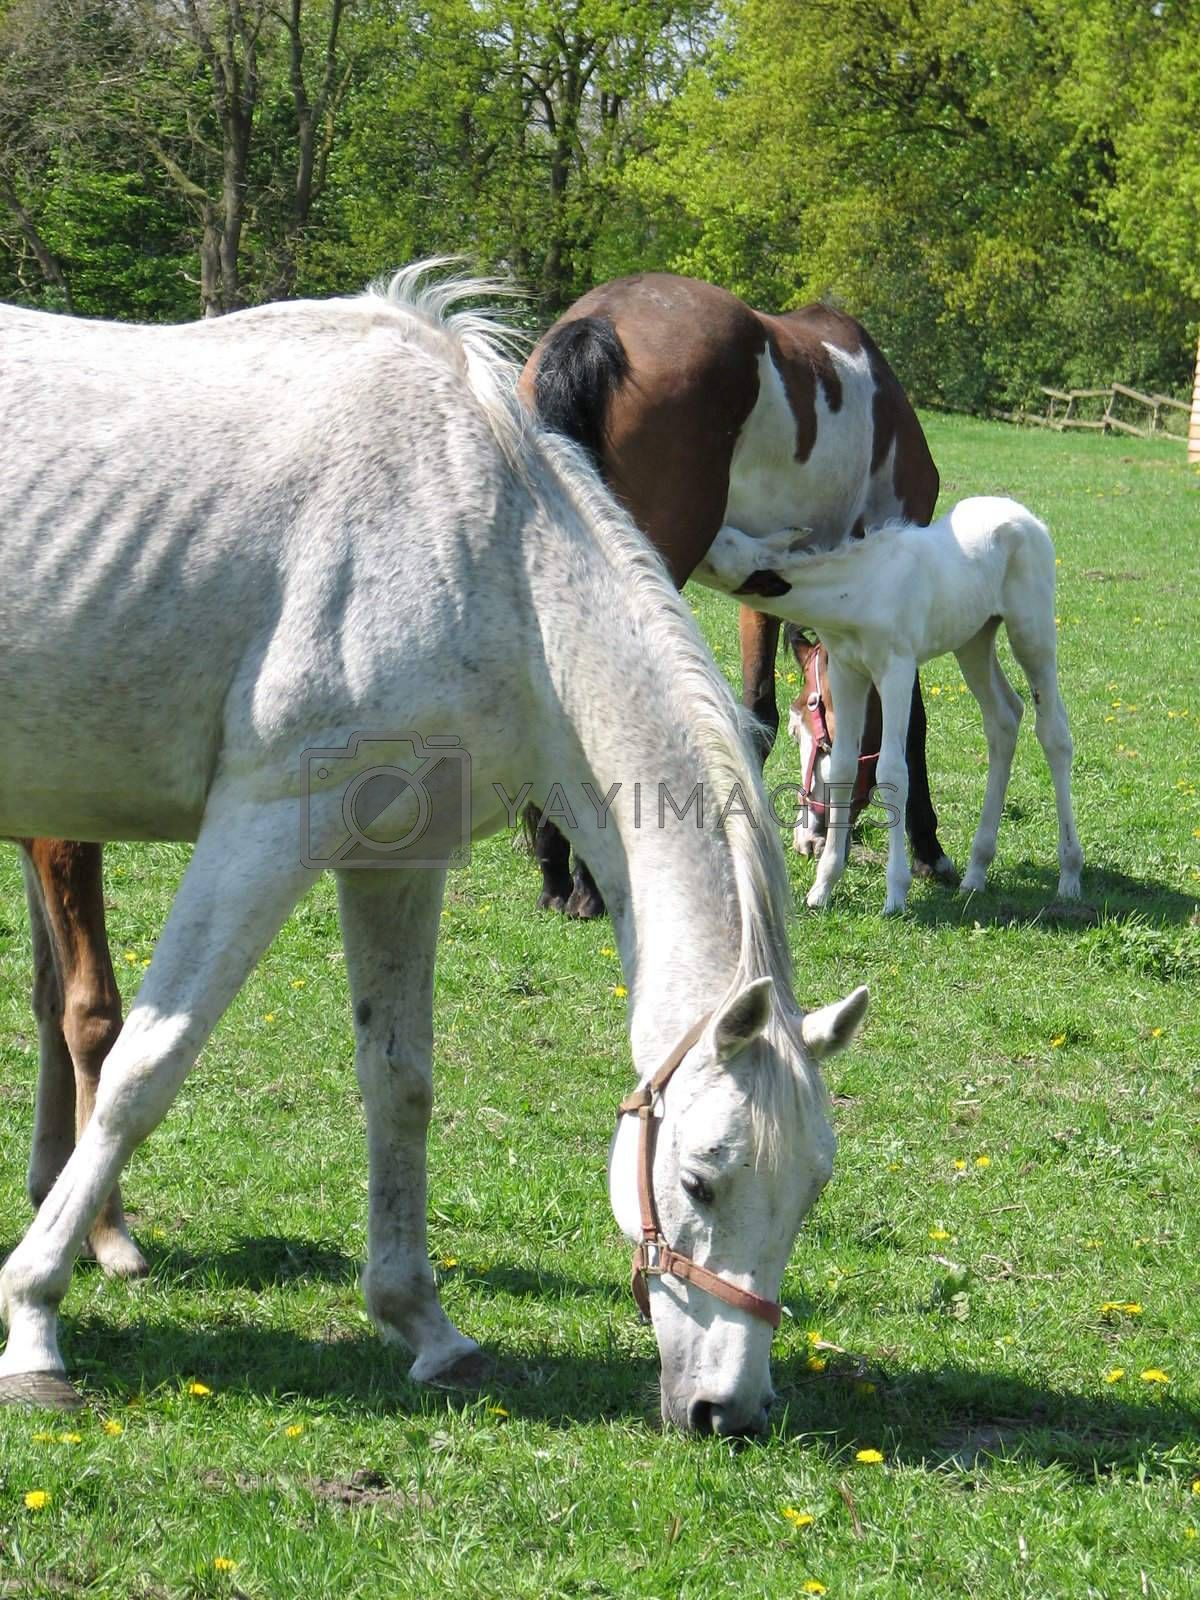 Horses in the pasture